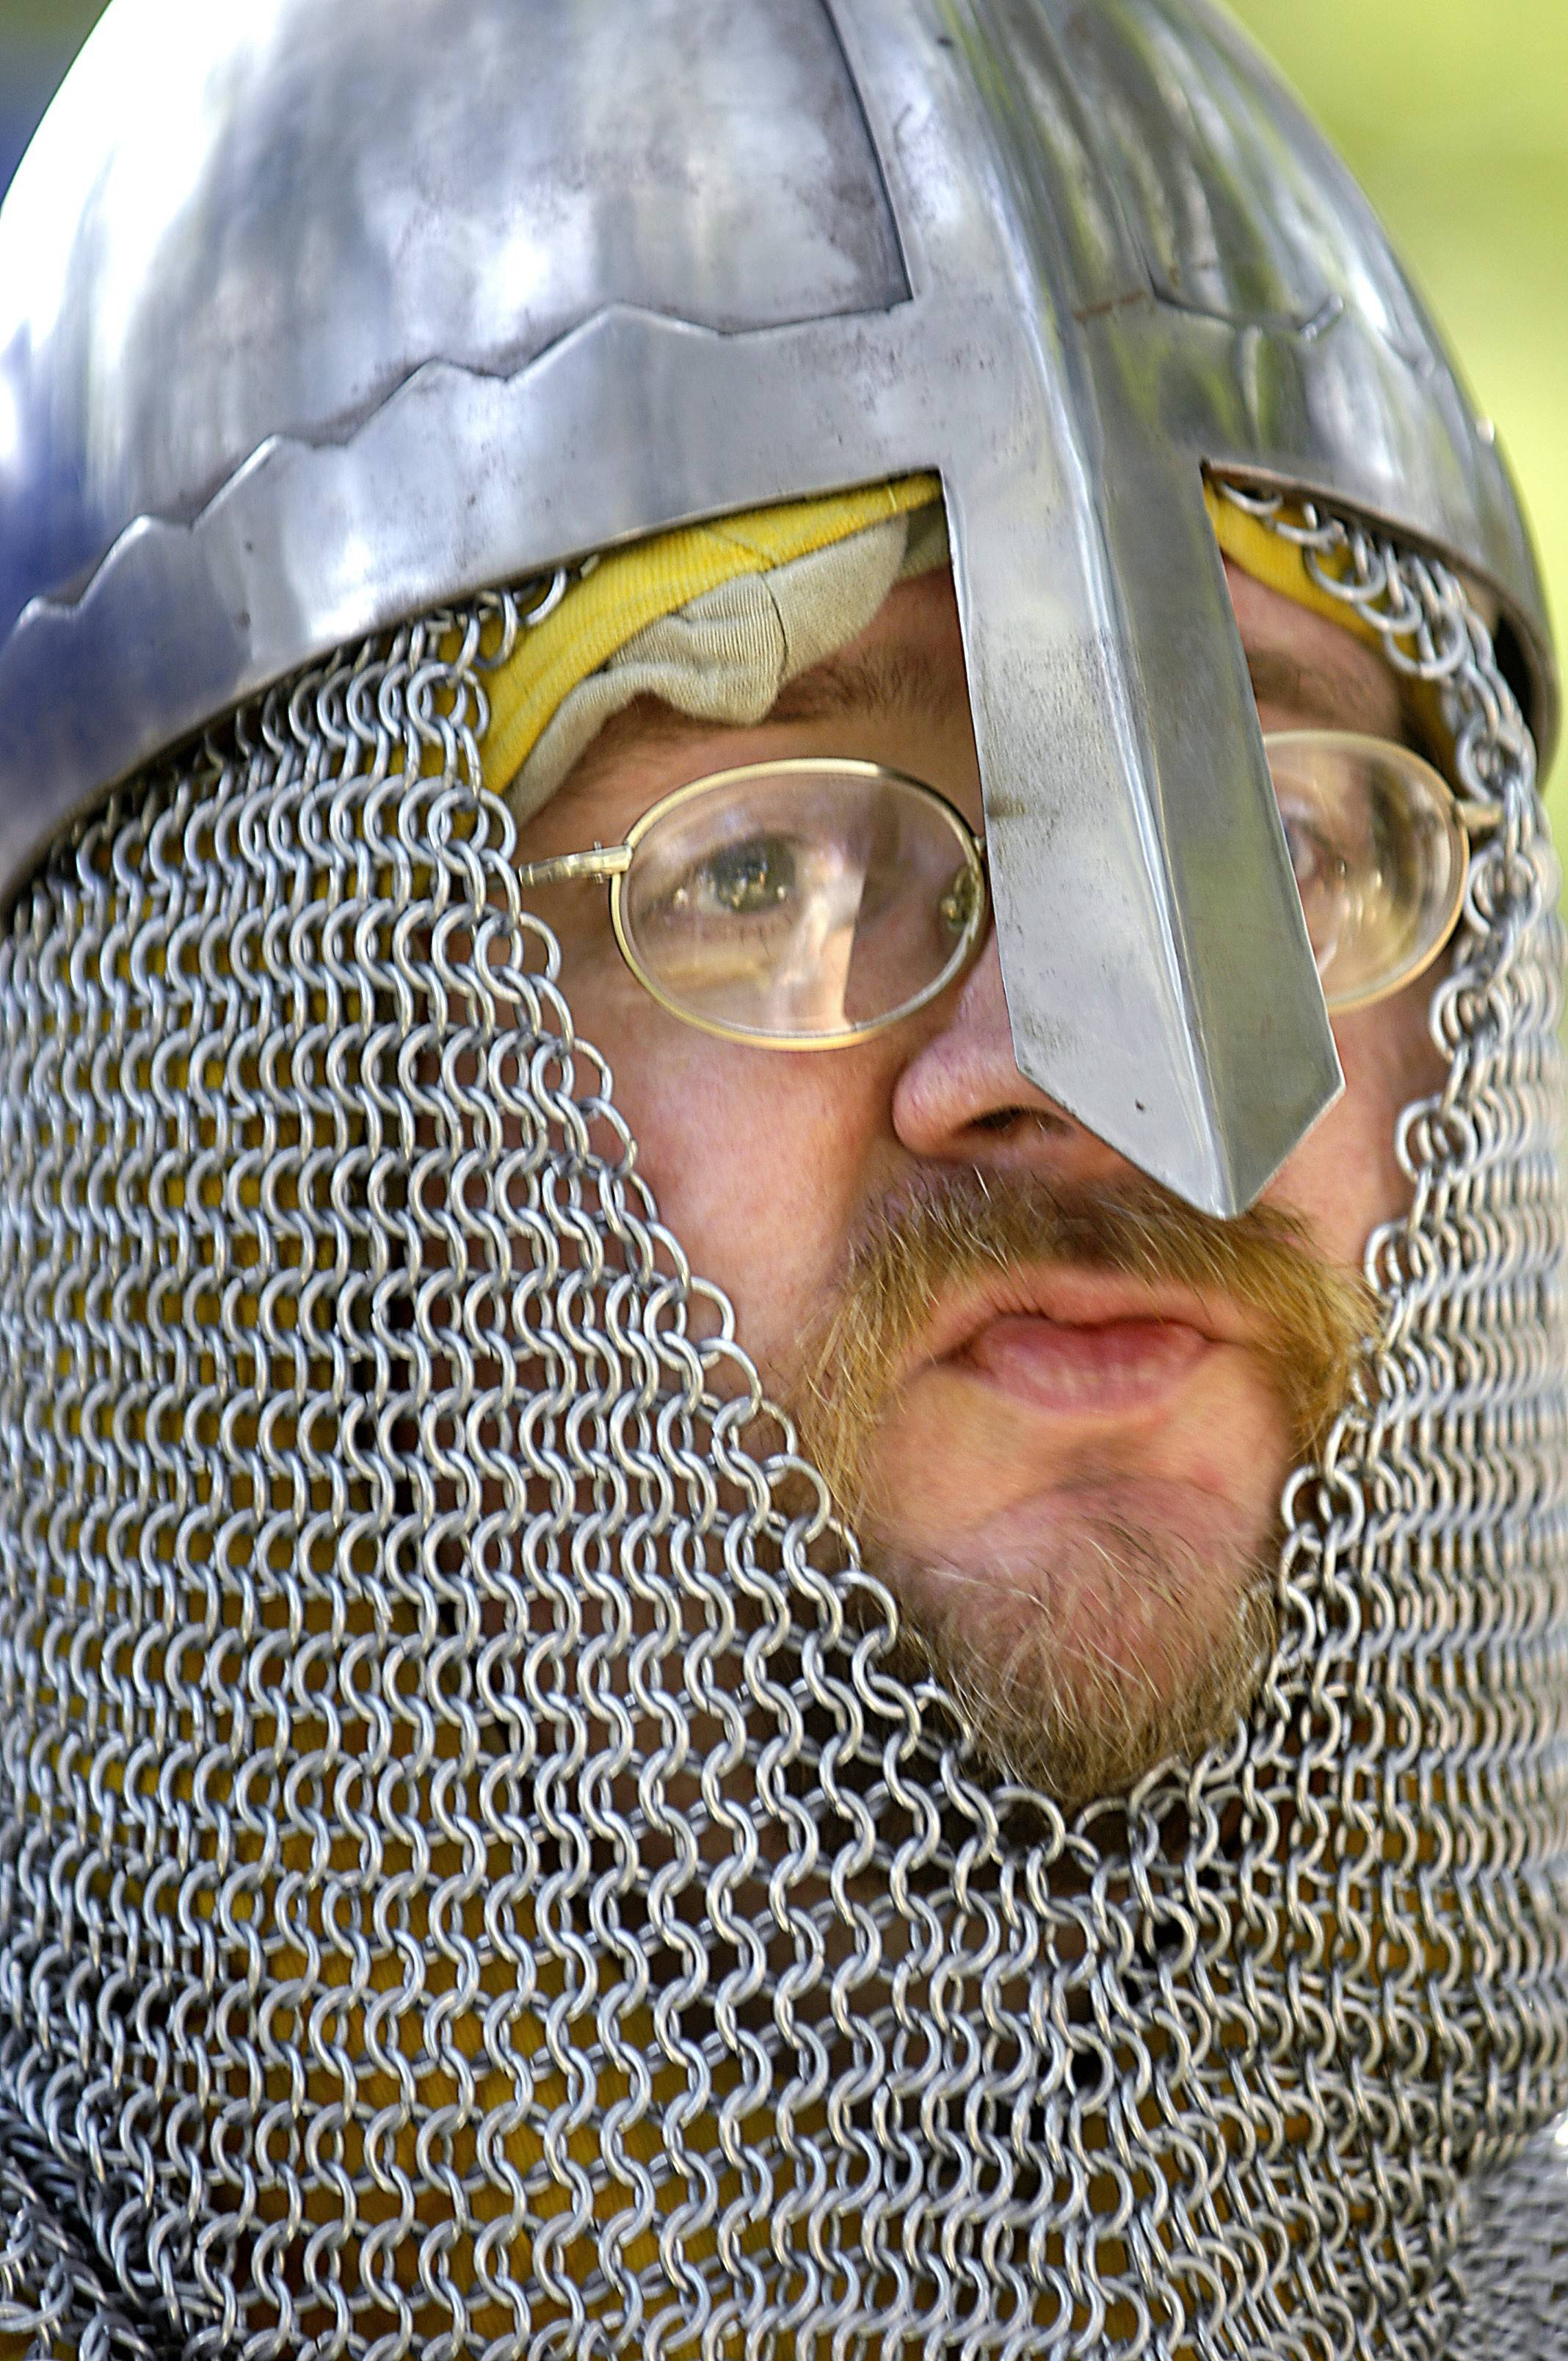 Learn about Nordic history Sunday at the Scandinavian Day Festival in Vasa Park in South Elgin.